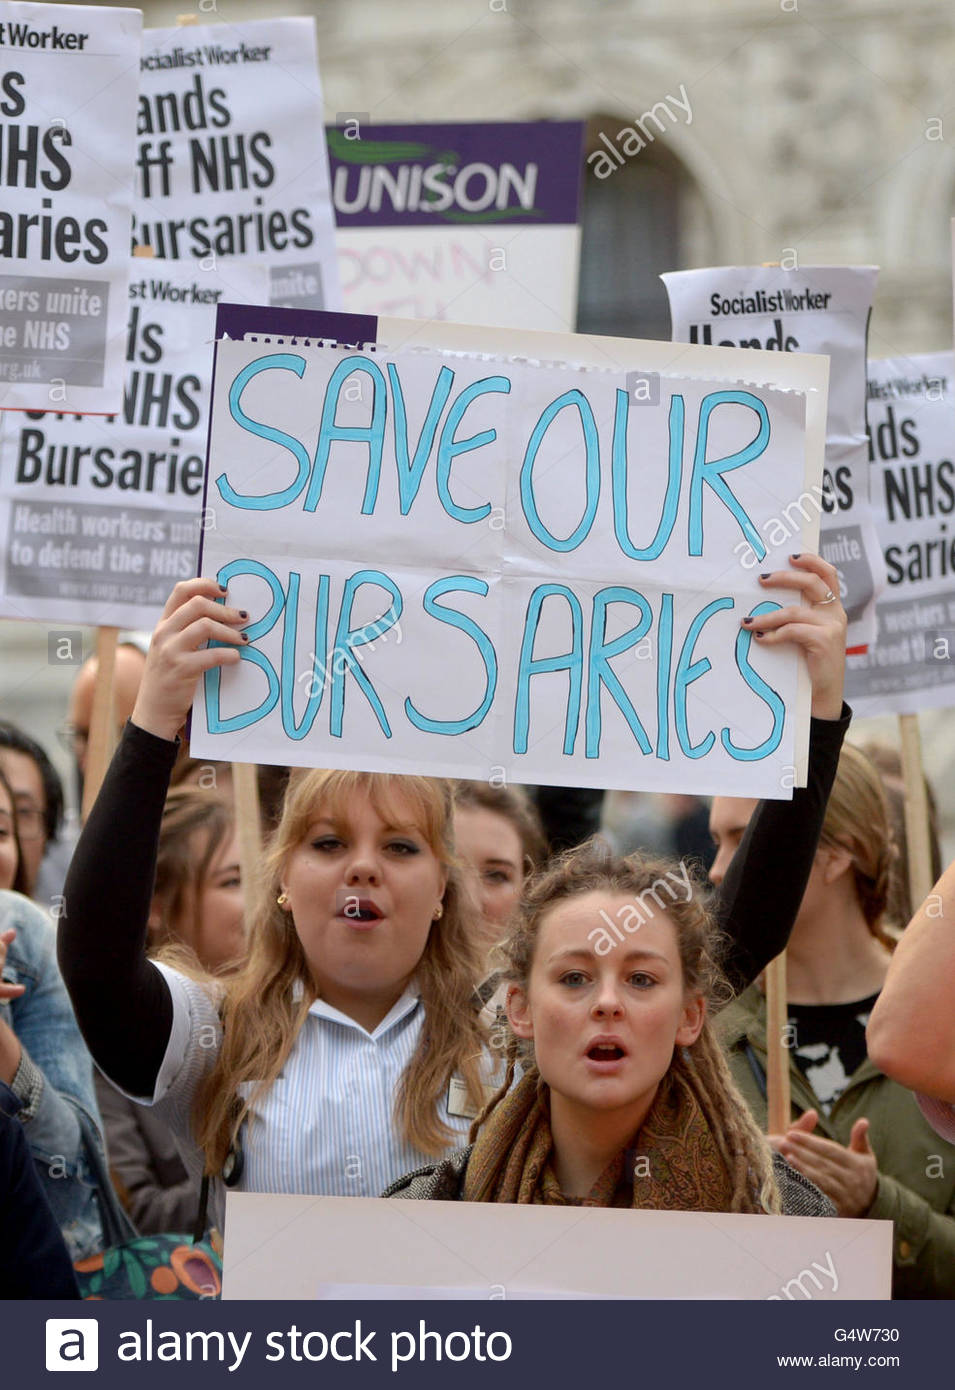 File photo dated 02/12/15 of student midwives and nurses protesting over the scrapping of bursaries outside the - Stock Image